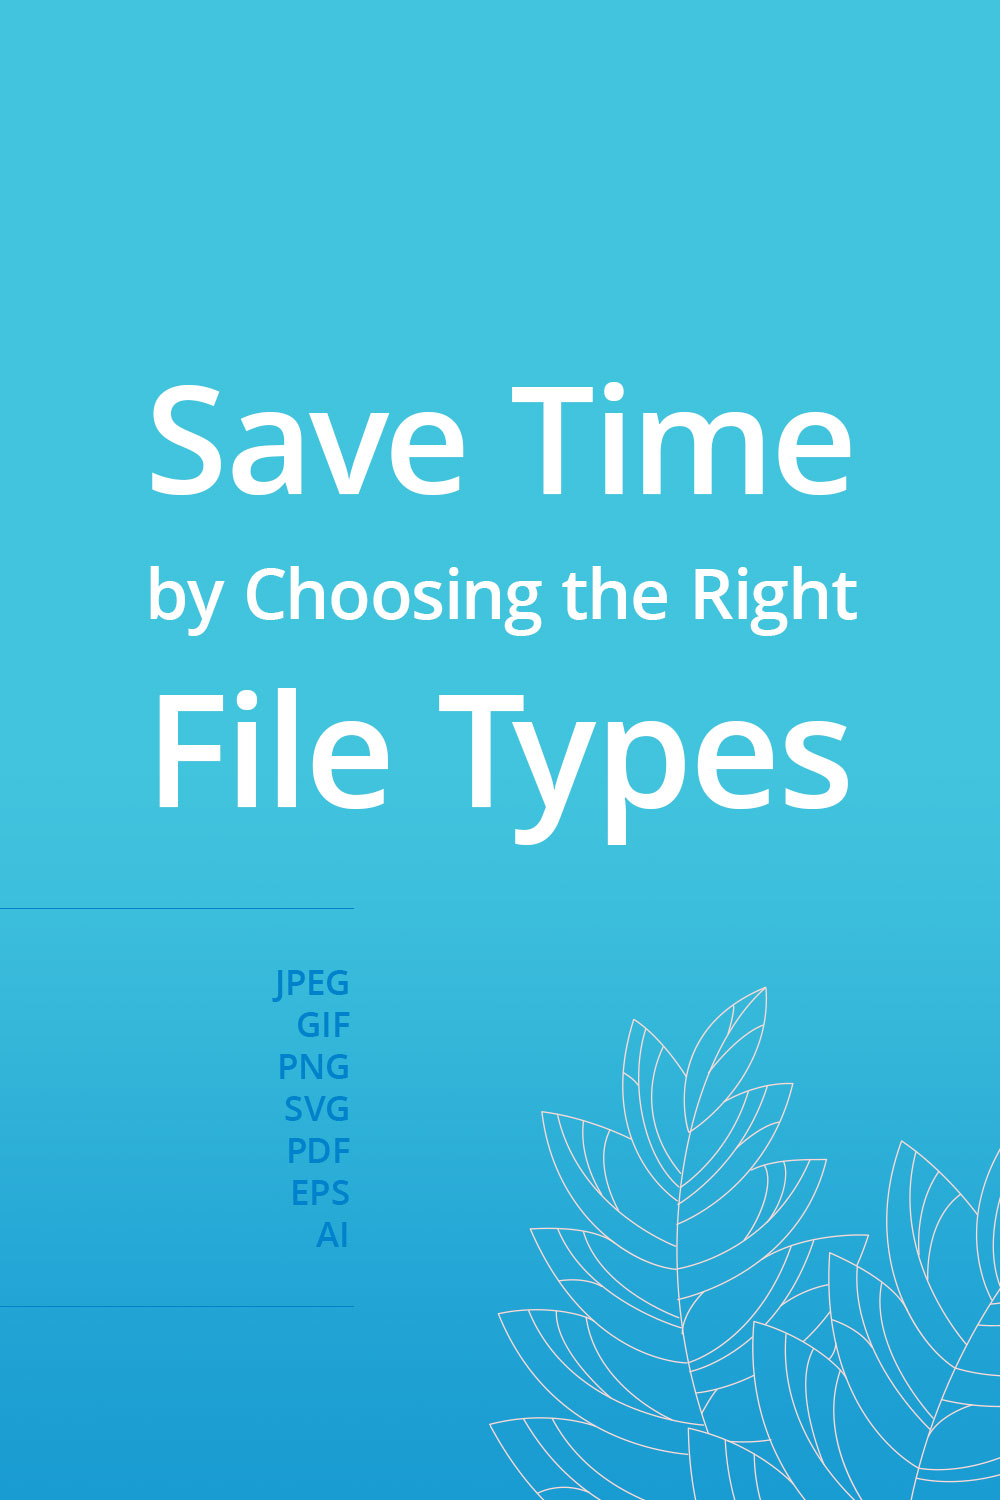 Save time by choosing the right file types